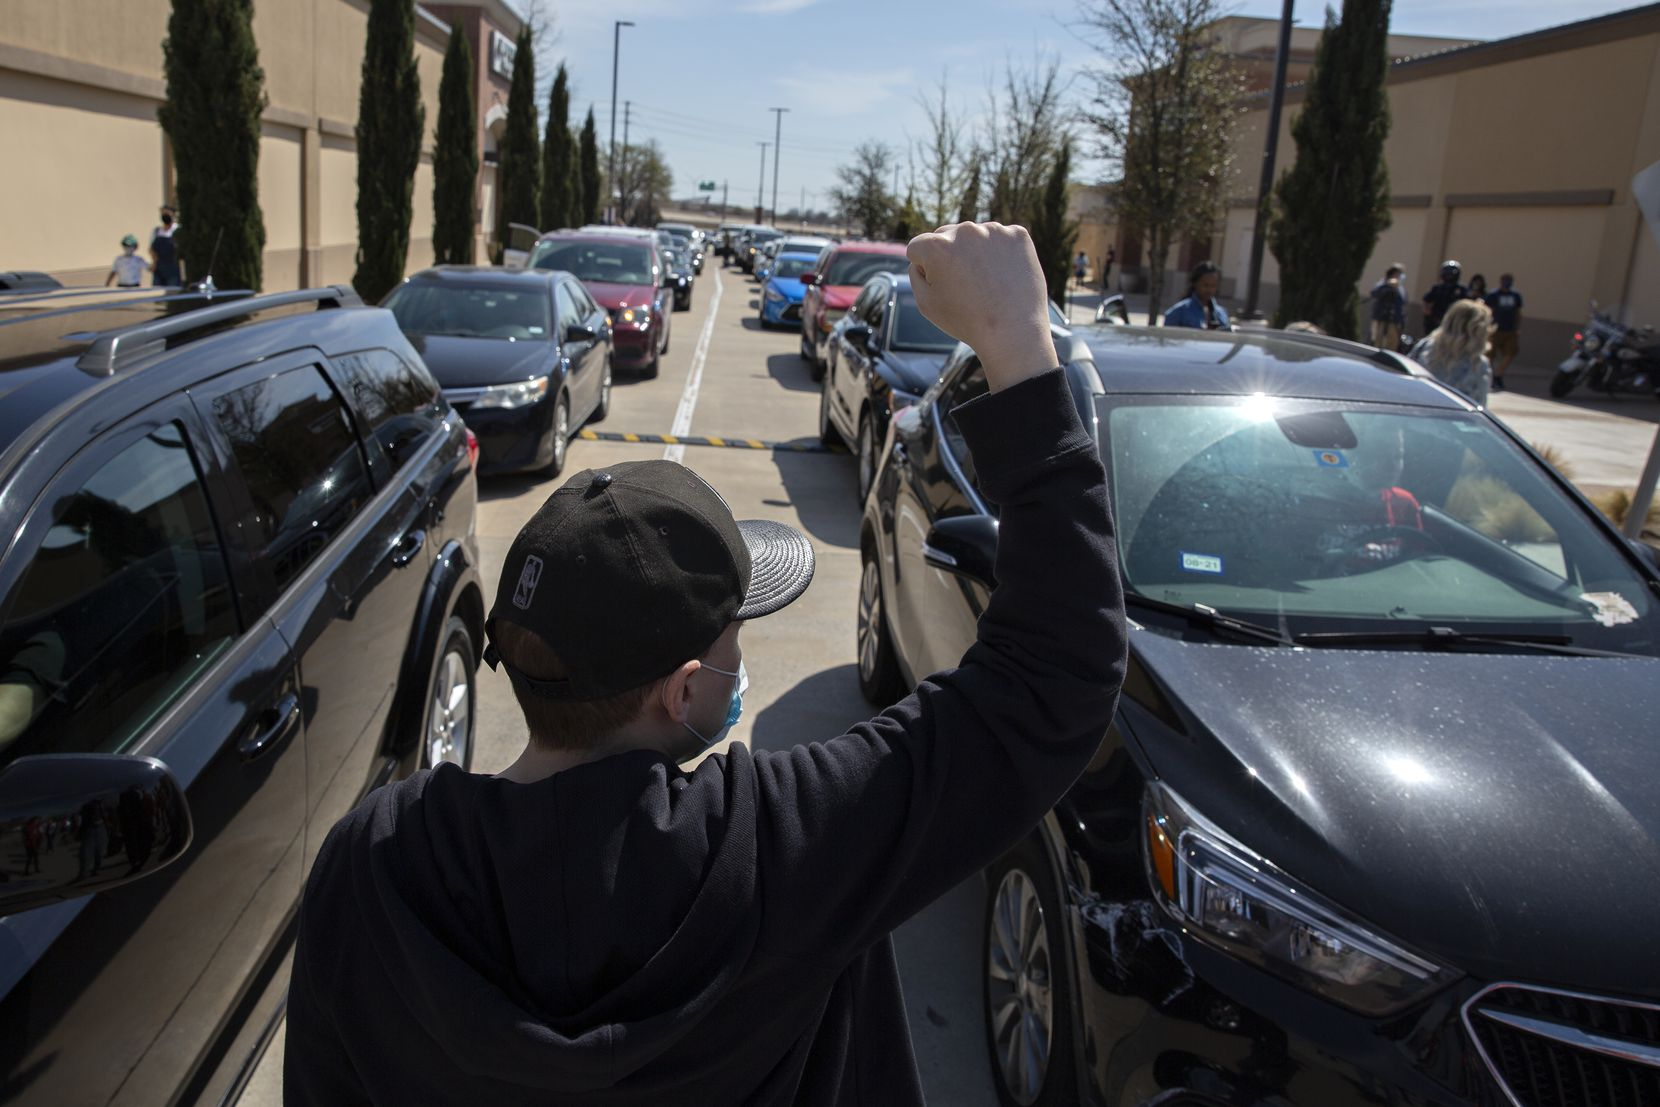 Max Bolen III puts up a fist towards the backed up traffic into the Allen Outlets on Sunday, March 21, 2021 due to a demonstration. Demonstrators called for the arrest of the ÒCollin County SevenÓ, the seven Collin County Jail employees who were placed on leave after Marvin Scott IIIÕs death. (Shelby Tauber/Special Contributor)